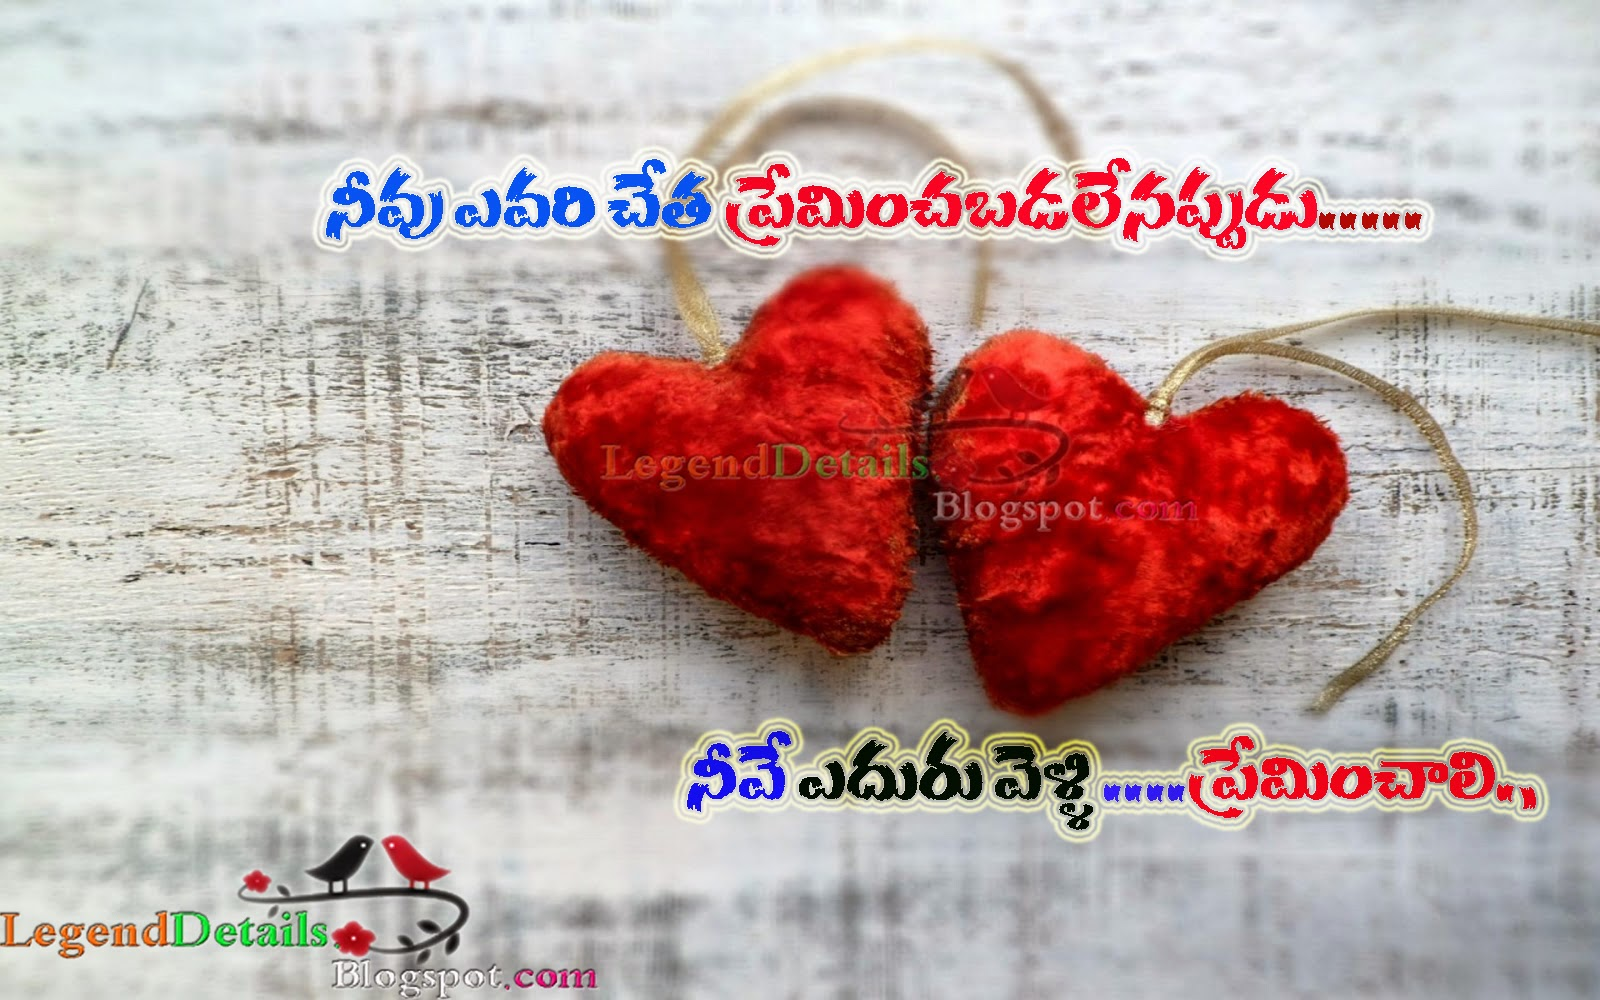 Telugu Love Quotes Famous New Telugu Love Quotes  Hd Wallpapers  Legendary Quotes